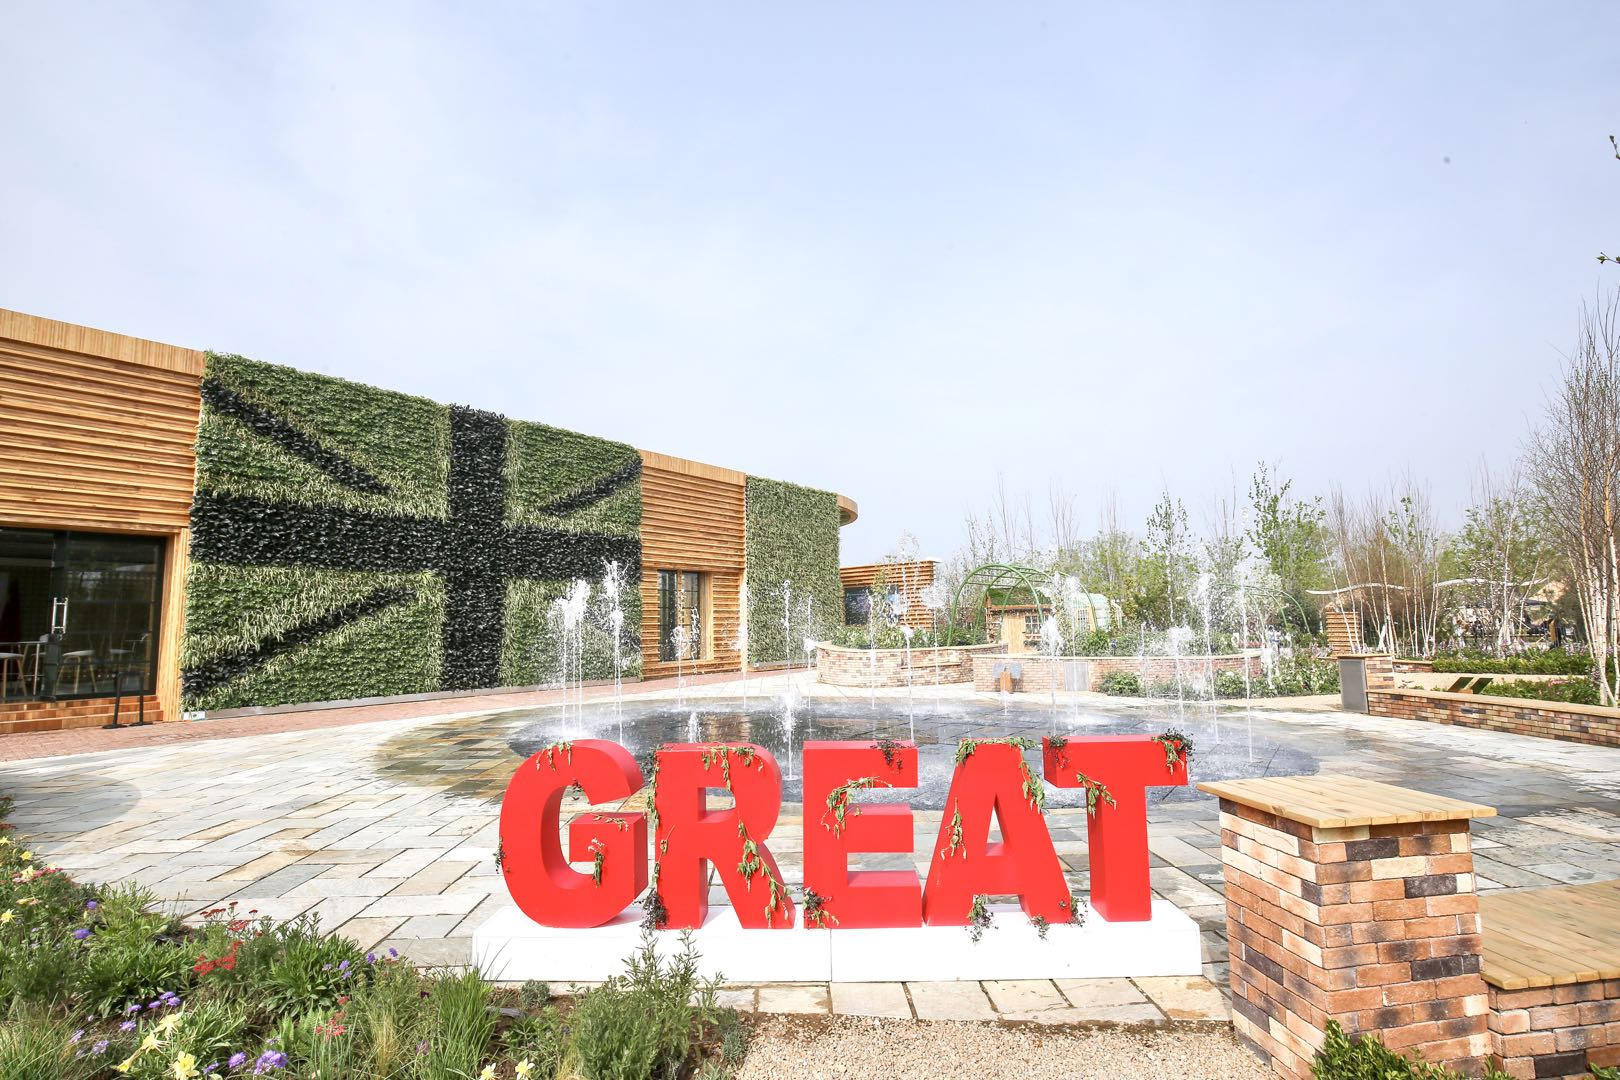 [Member News] Pearson Announces its Partnership with the British Pavilion of Beijing Expo 2019